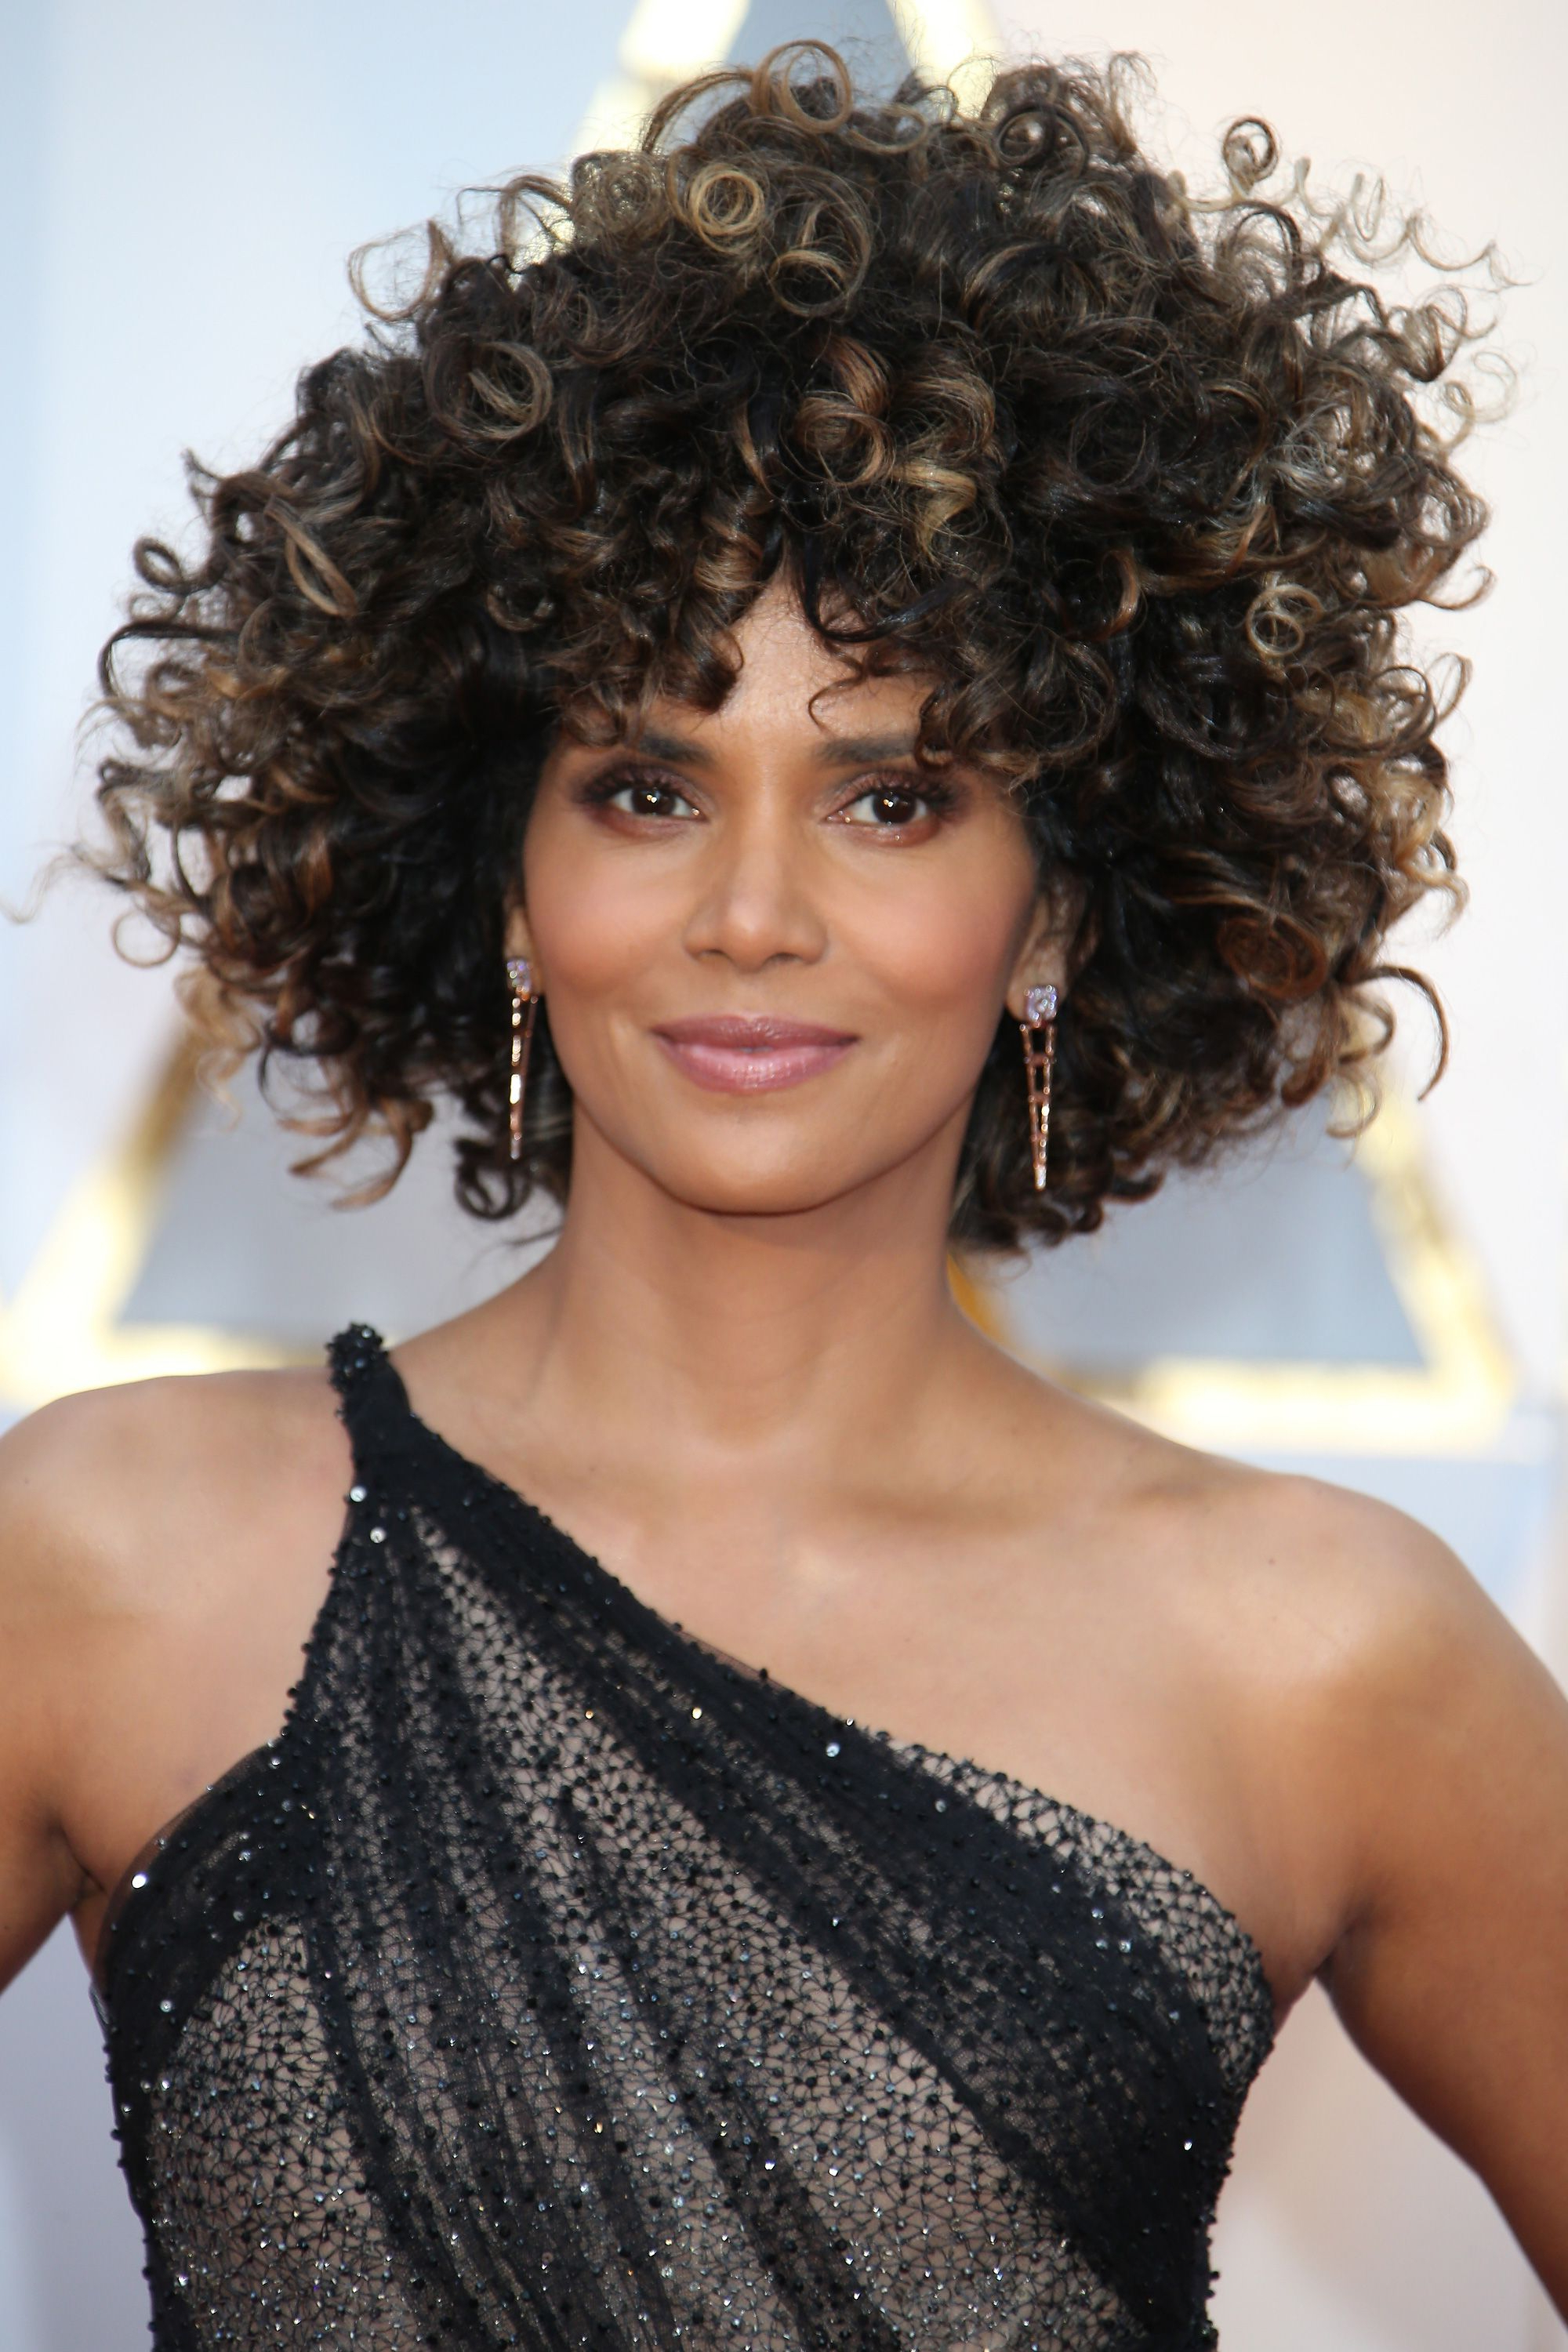 42 Easy Curly Hairstyles – Short, Medium, And Long Haircuts For In Natural Textured Curly Hairstyles (View 20 of 25)